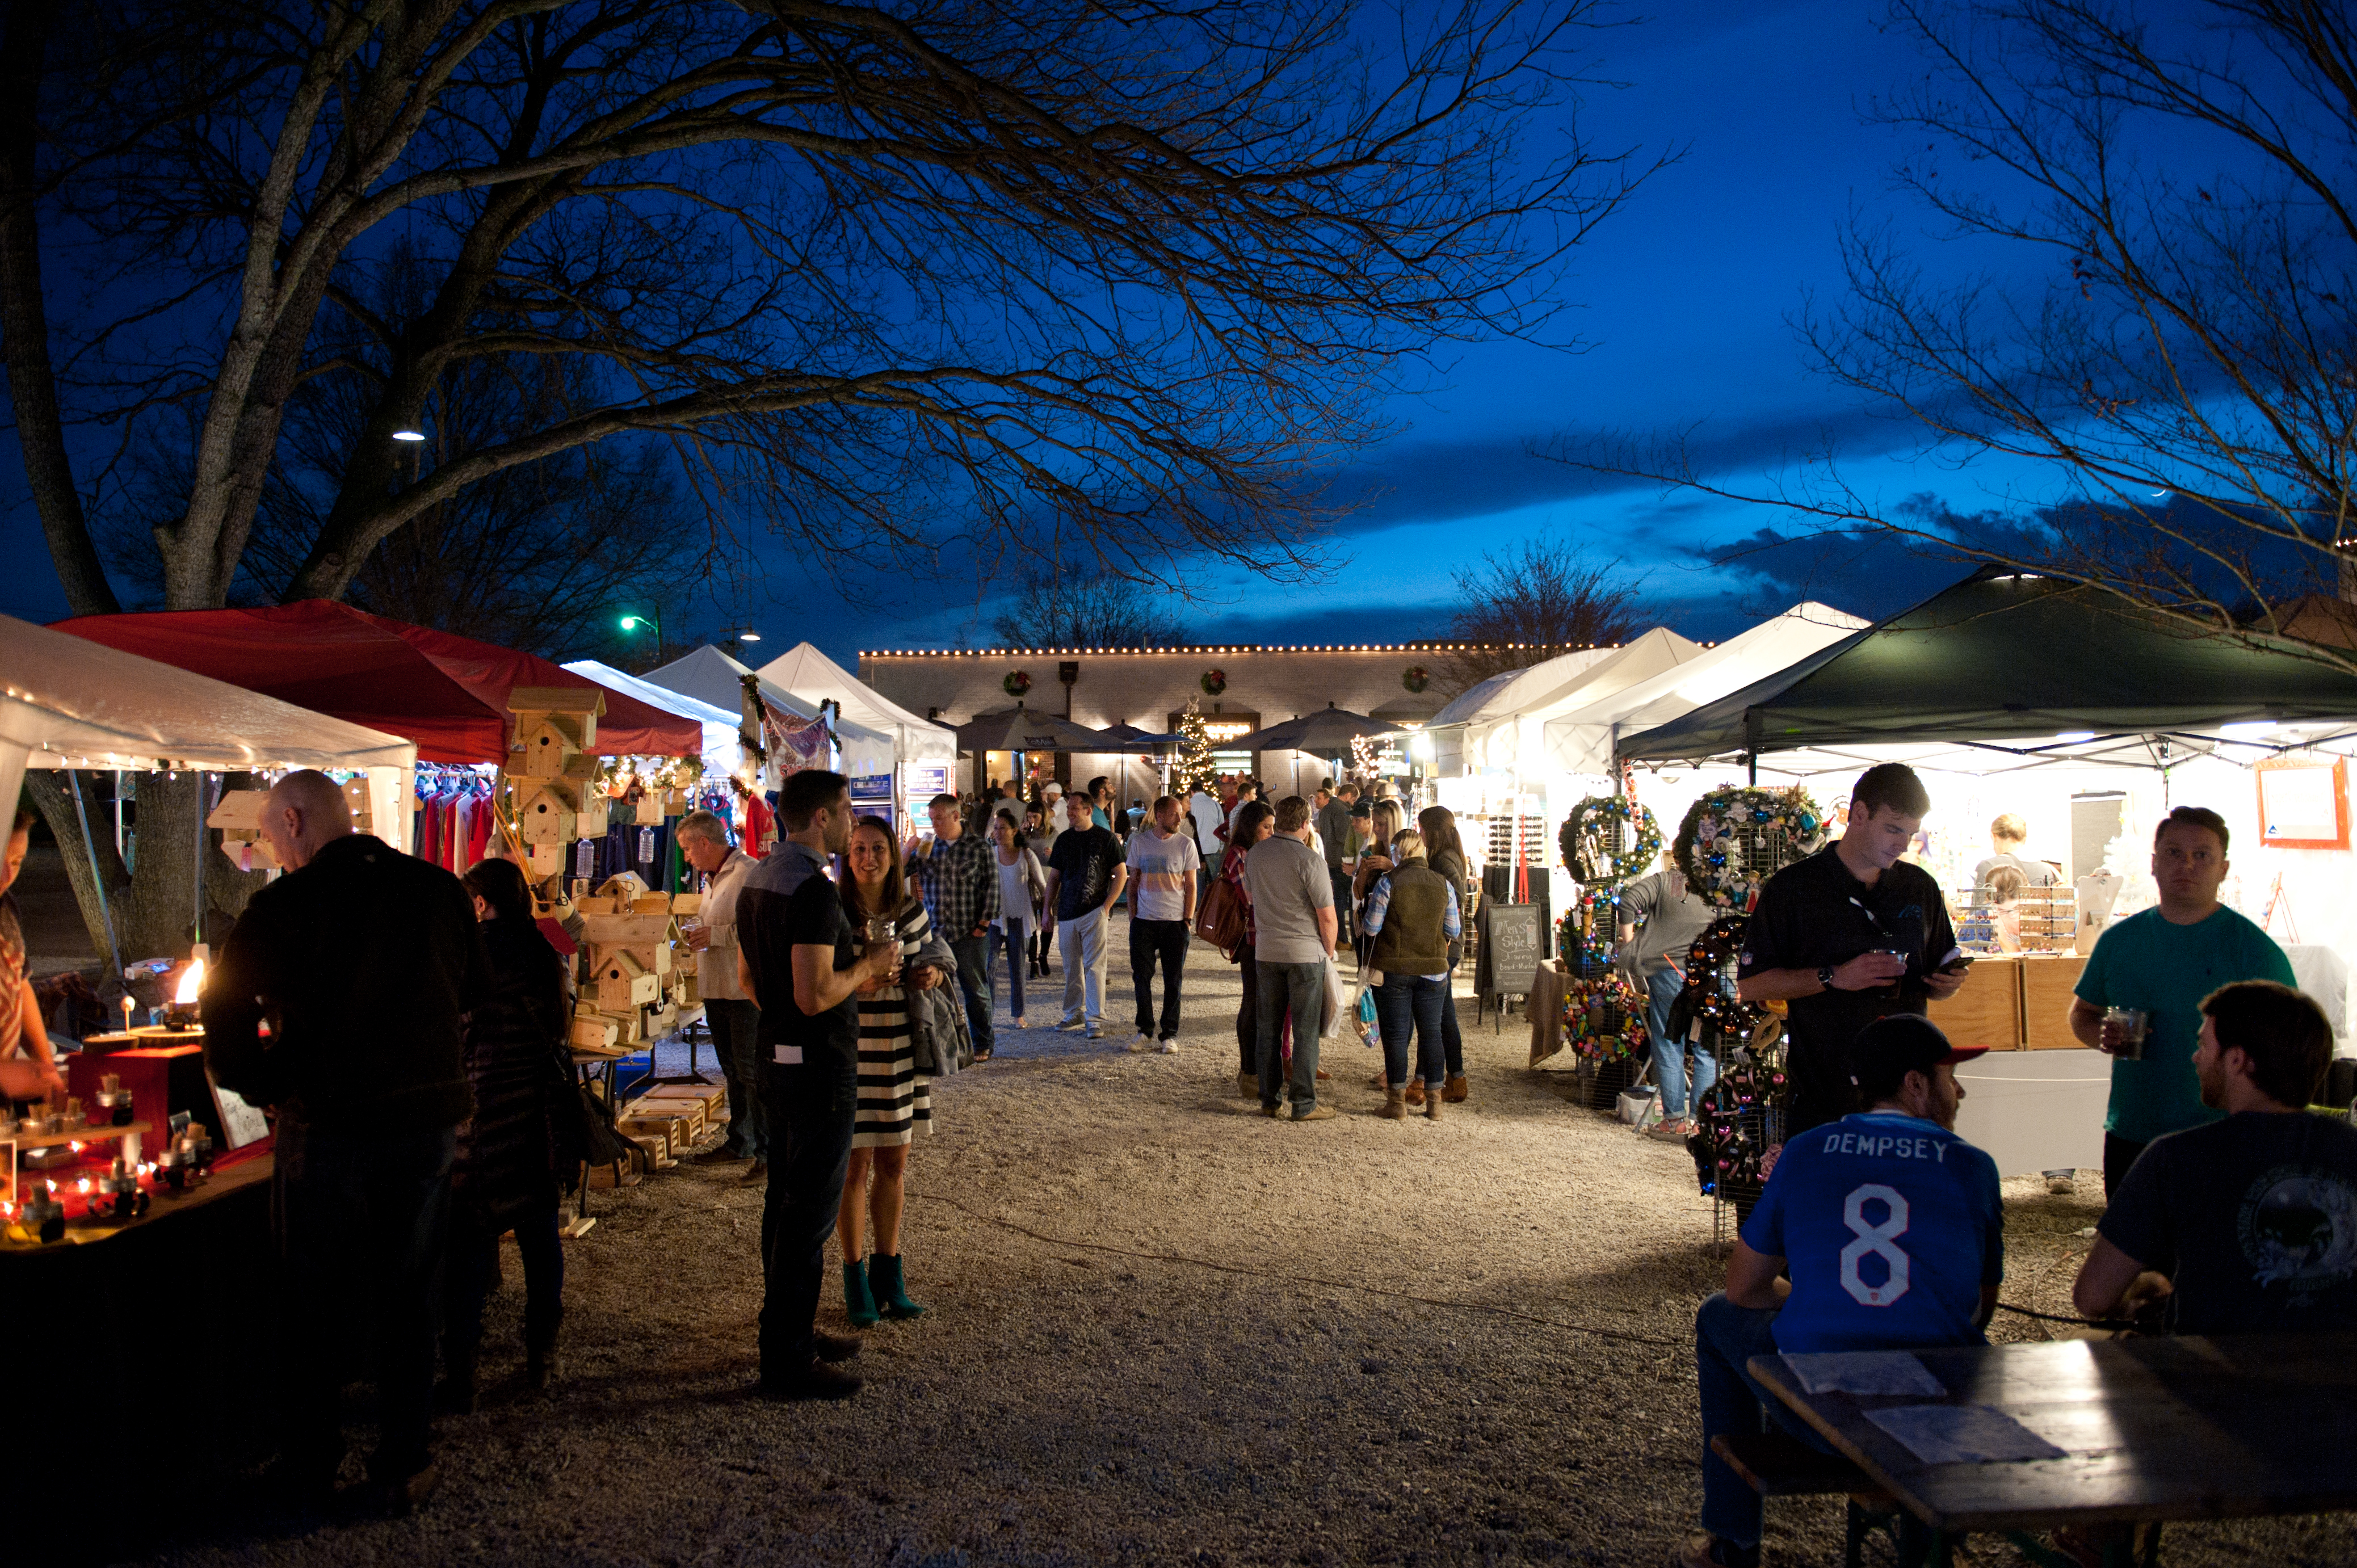 Charlotte Christmas Market.9 Best Holiday Markets In Charlotte 2017